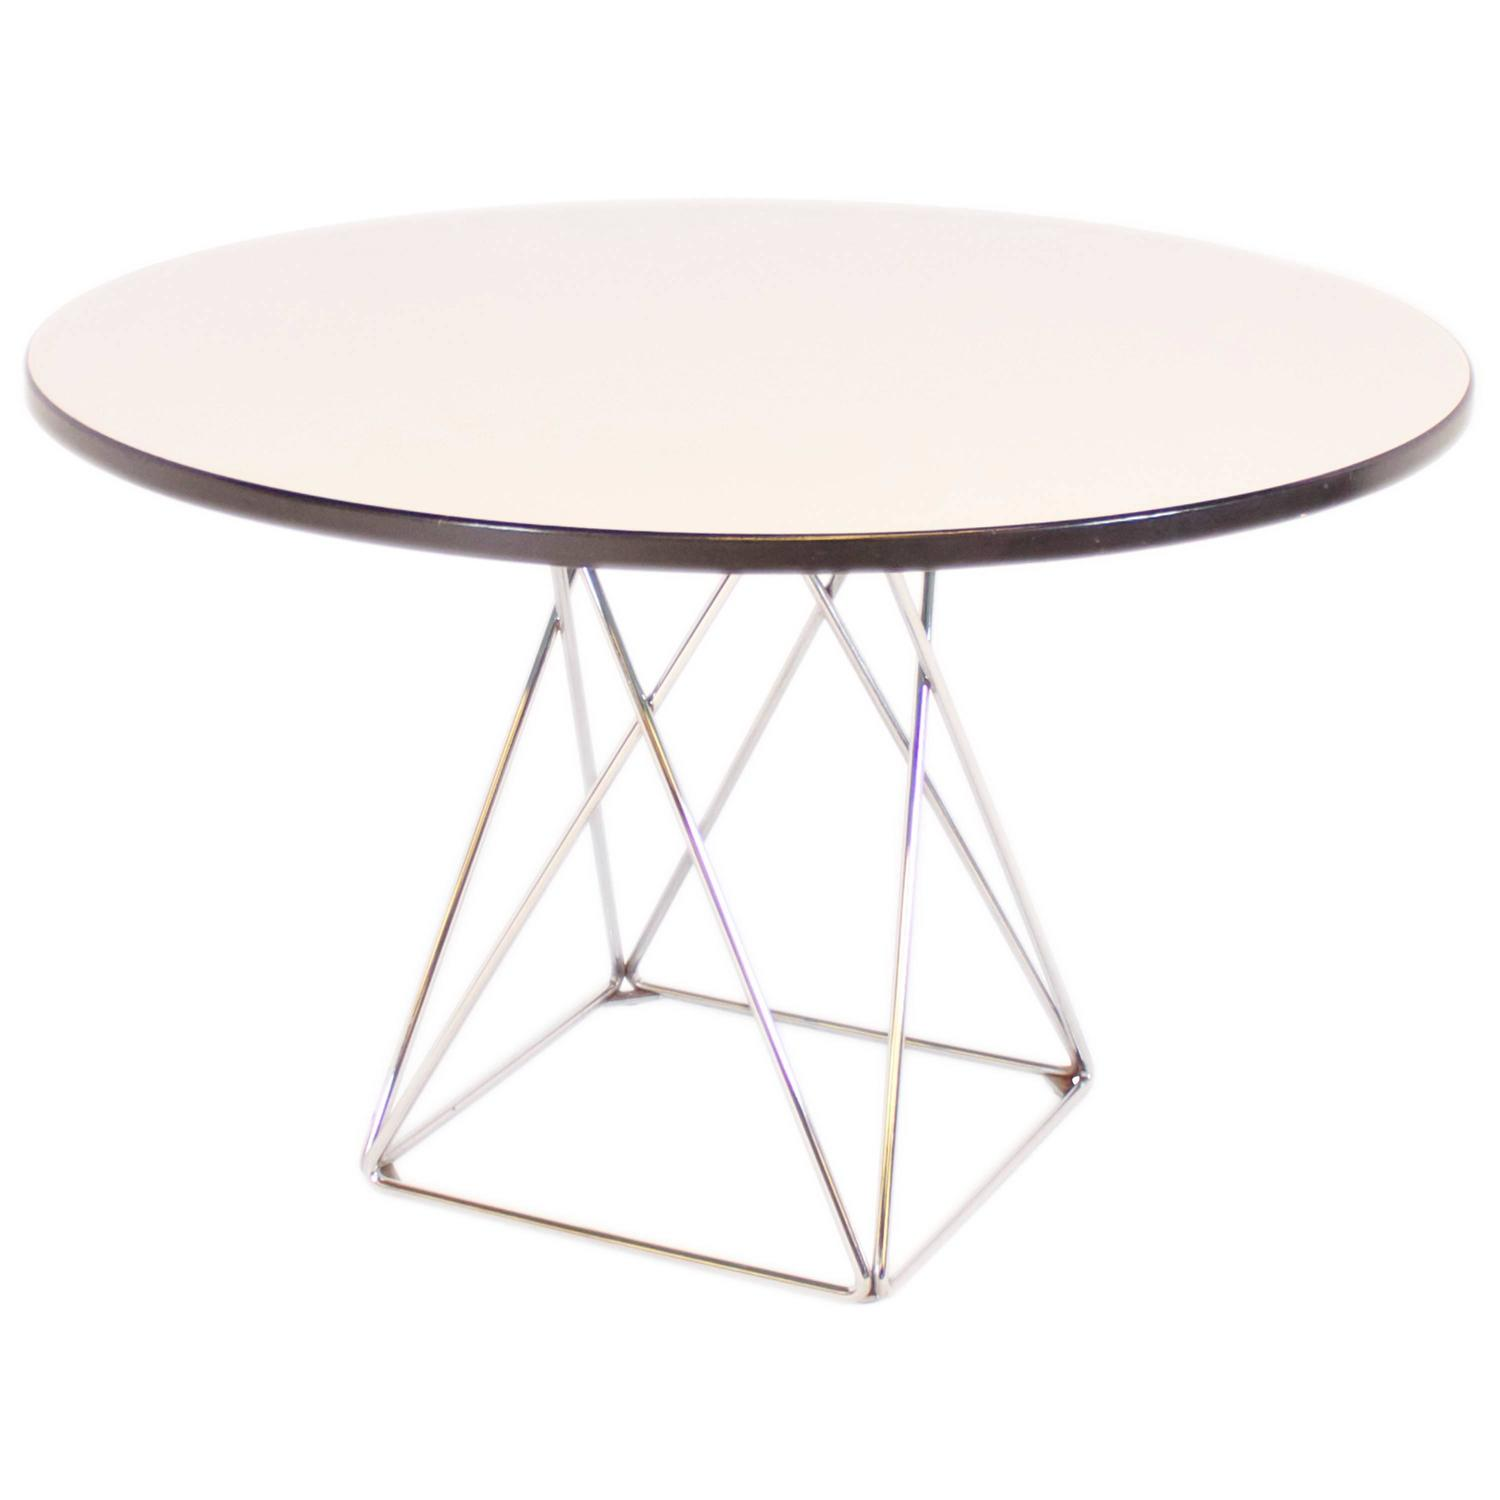 Extendable Round Bauhaus Dining Table by Thonet S1047 at 1stdibs